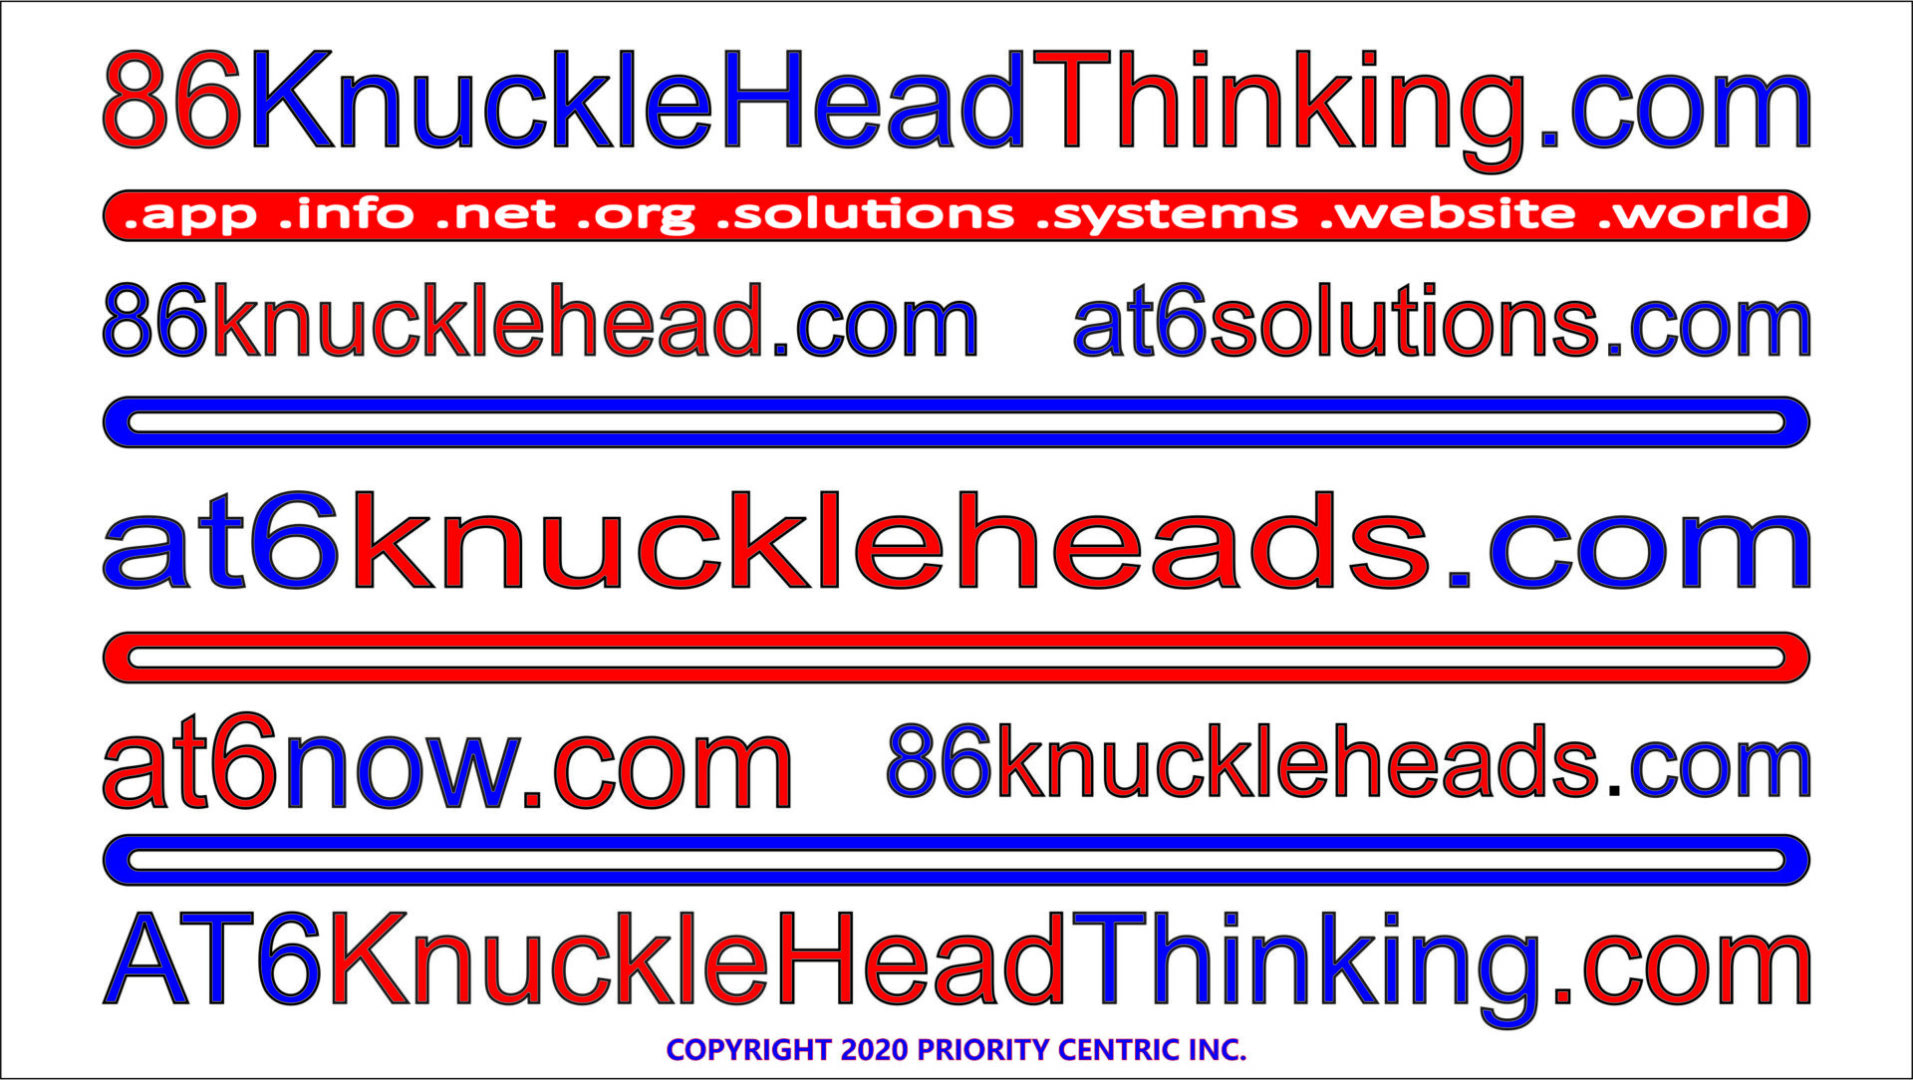 86knuckleheadthinking CR2020